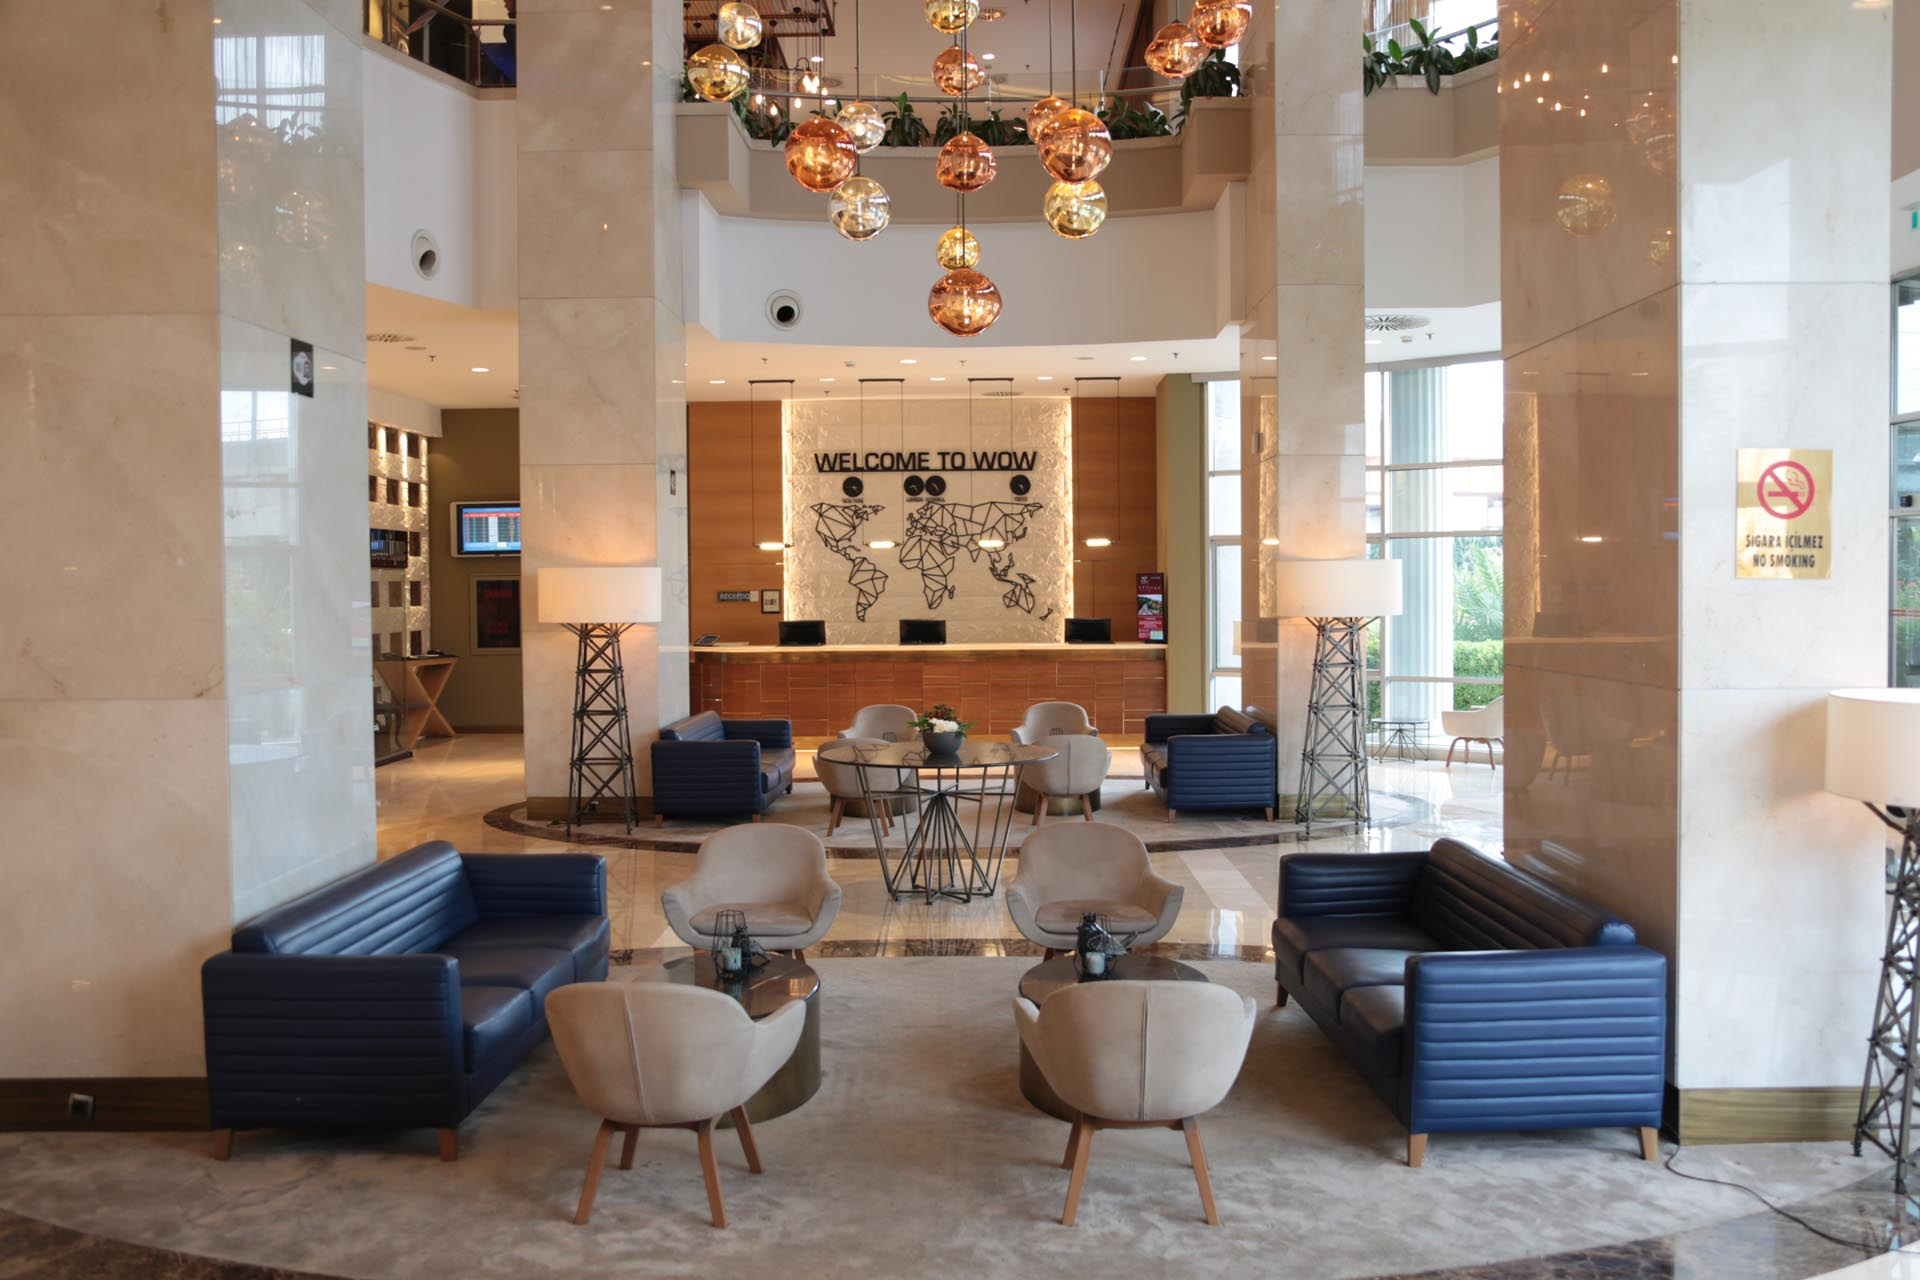 Hotel Lobby at WOW Istanbul Hotel